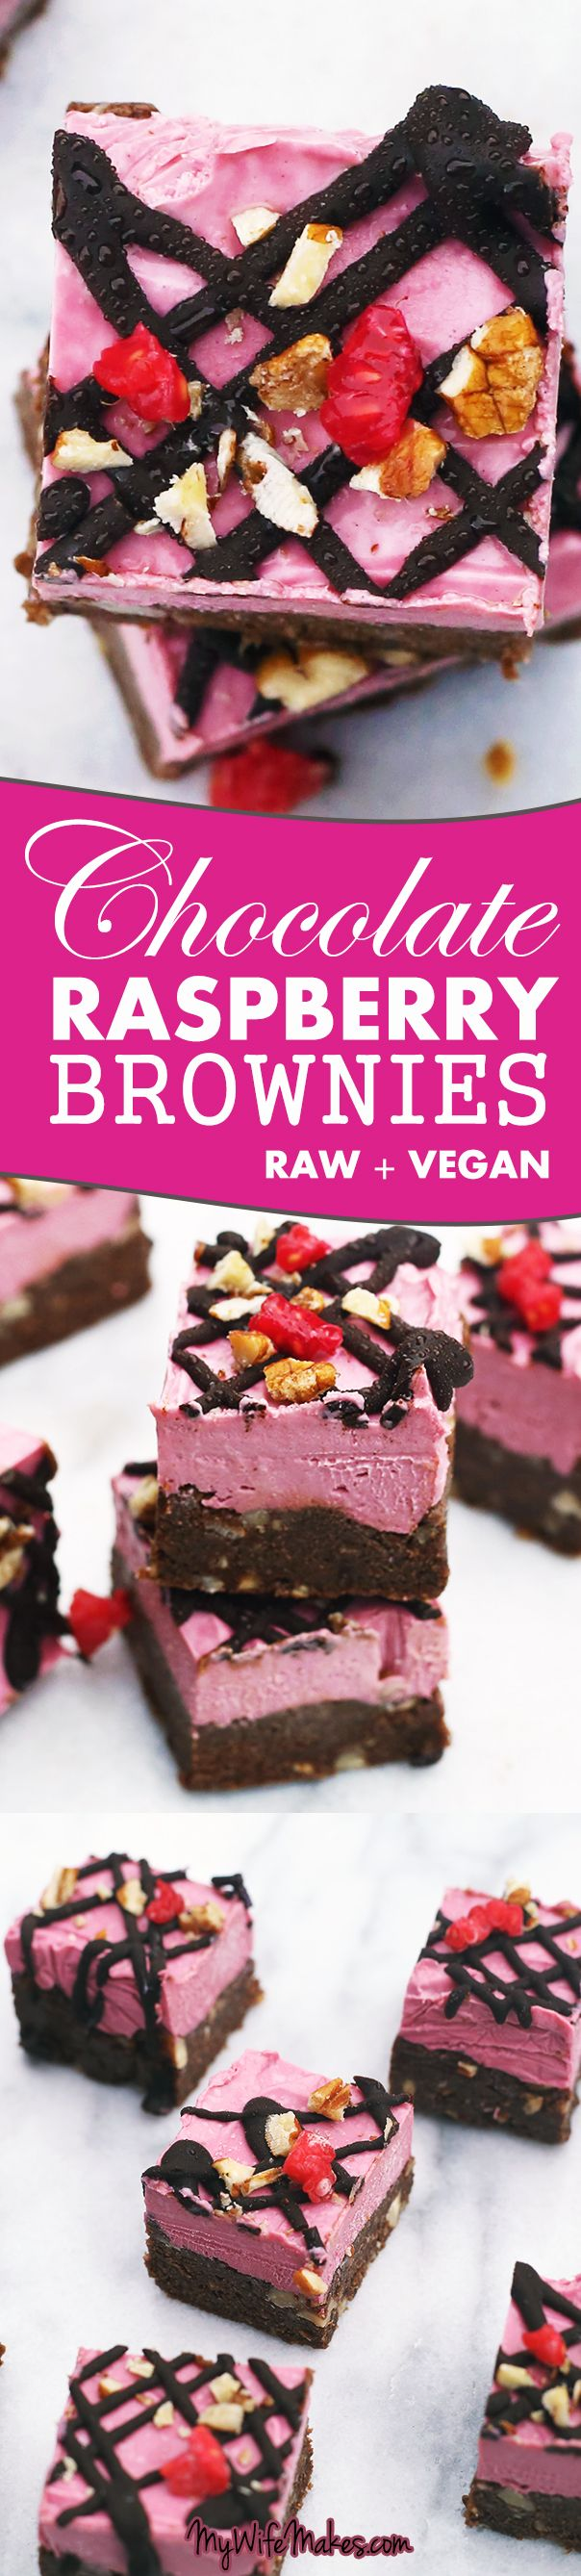 Raw Vegan Chocolate Raspberry Brownies made up of a raw chocolate brownie base, filled with delicious nuts, and topped with creamy raw raspberry cheesecake.